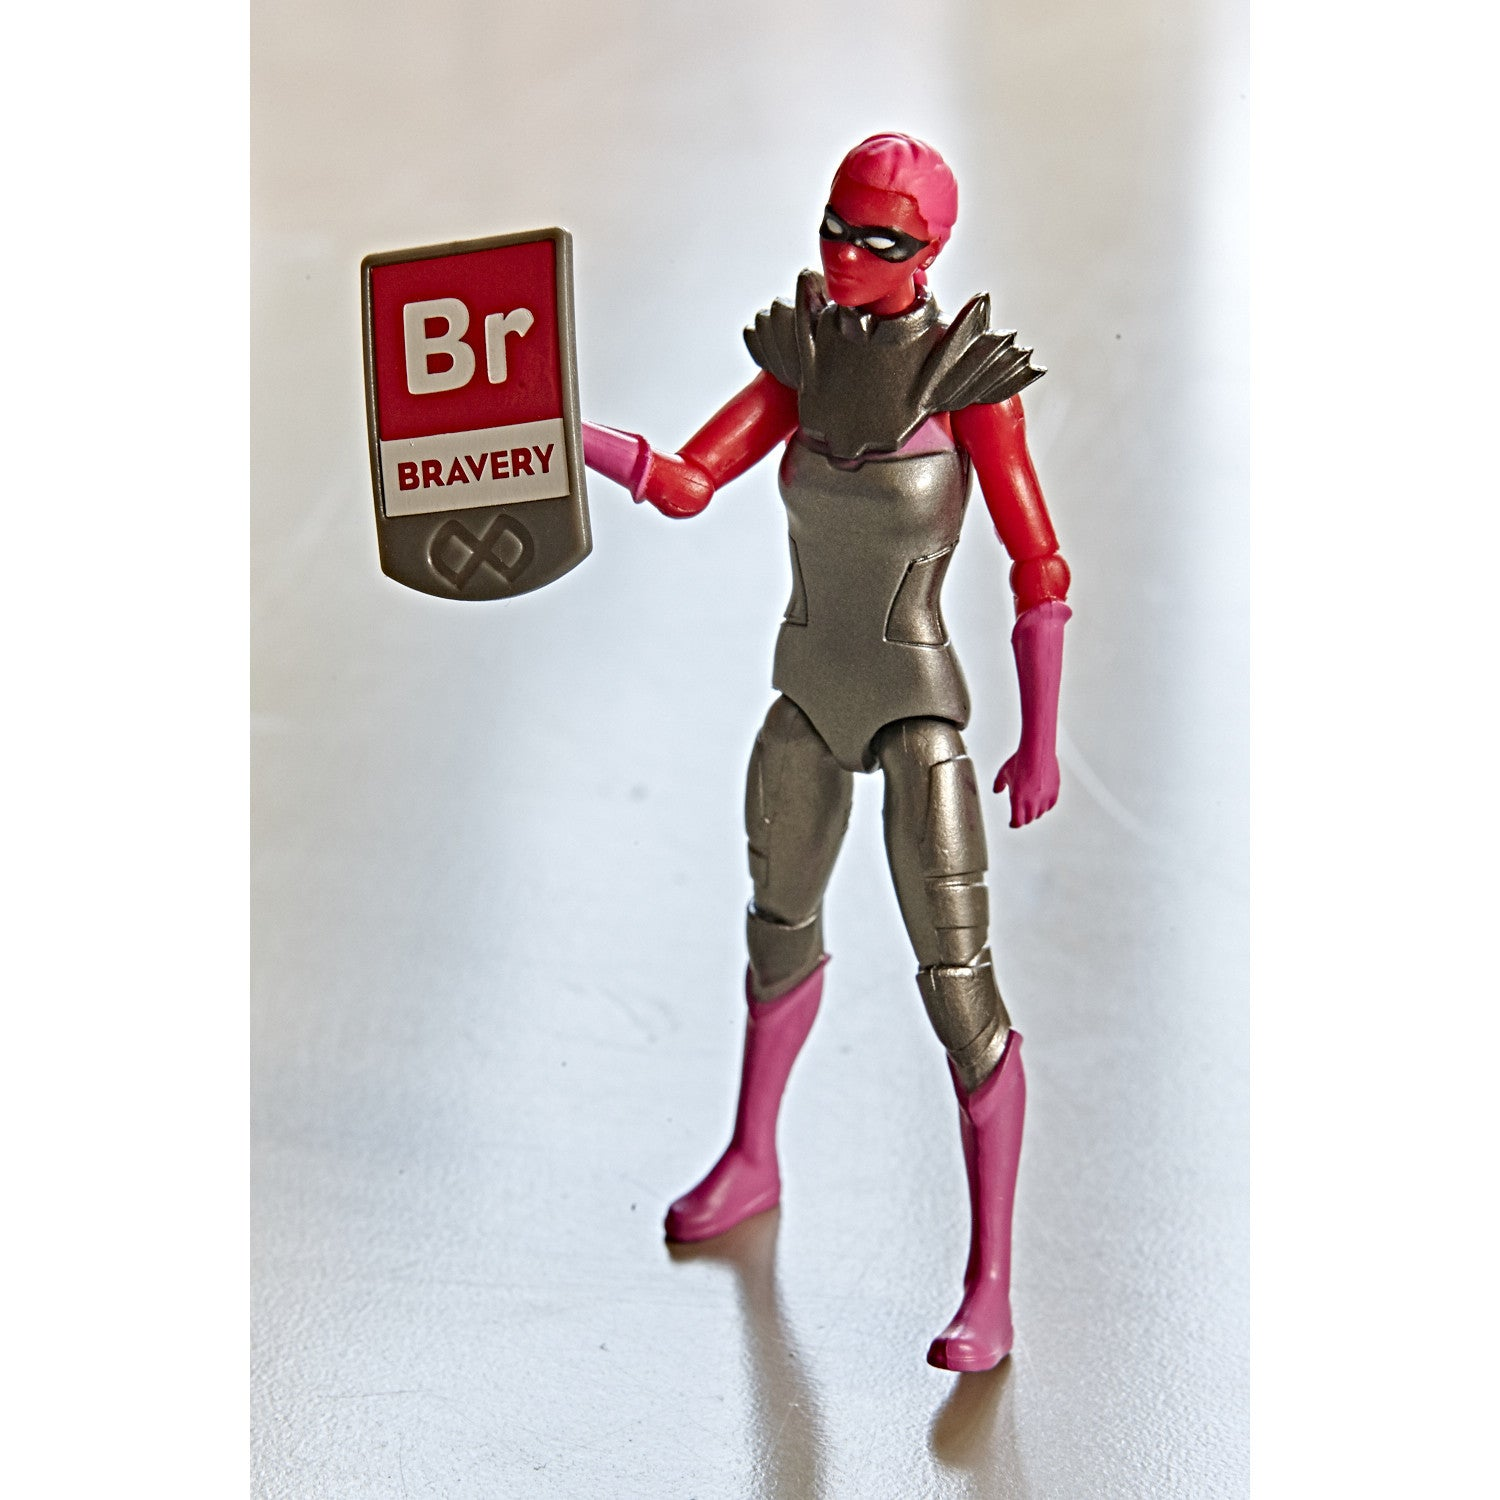 Bravery Action Figure - IAmElemental